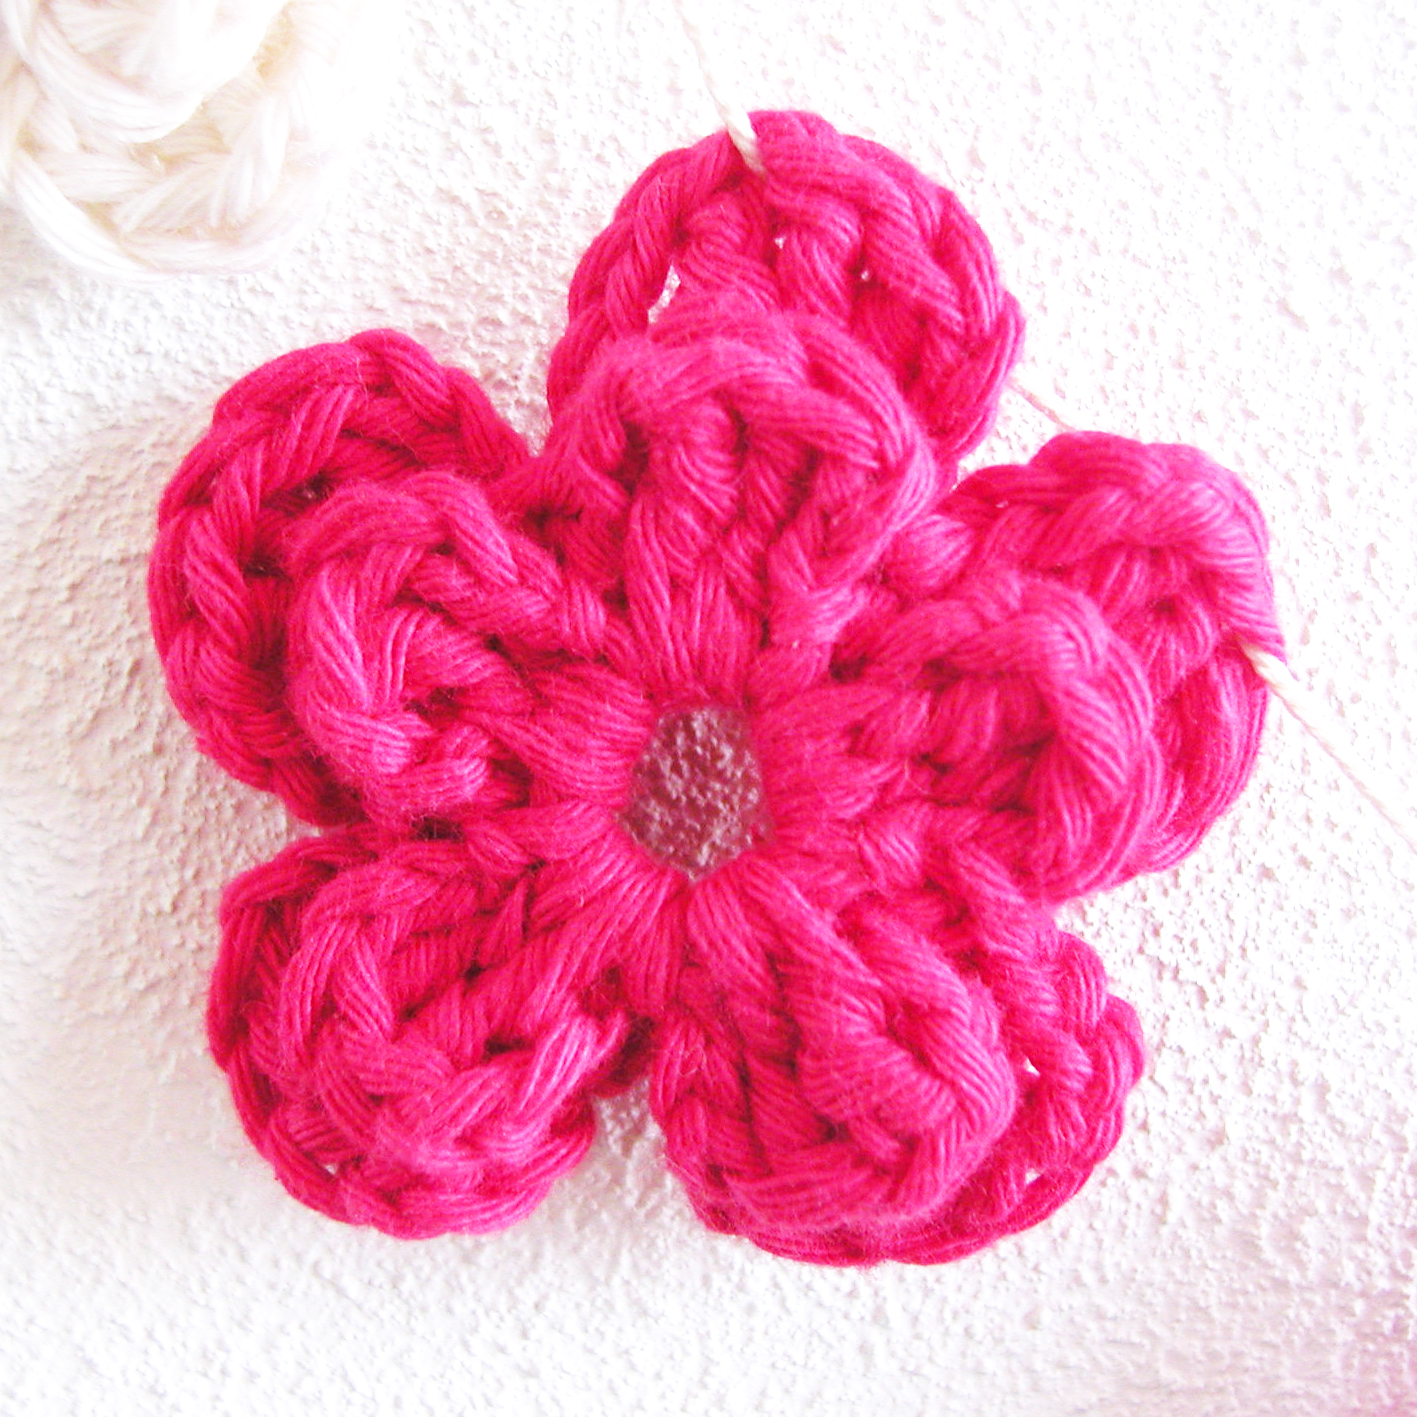 For the Love of Crochet Along: Flower patterns